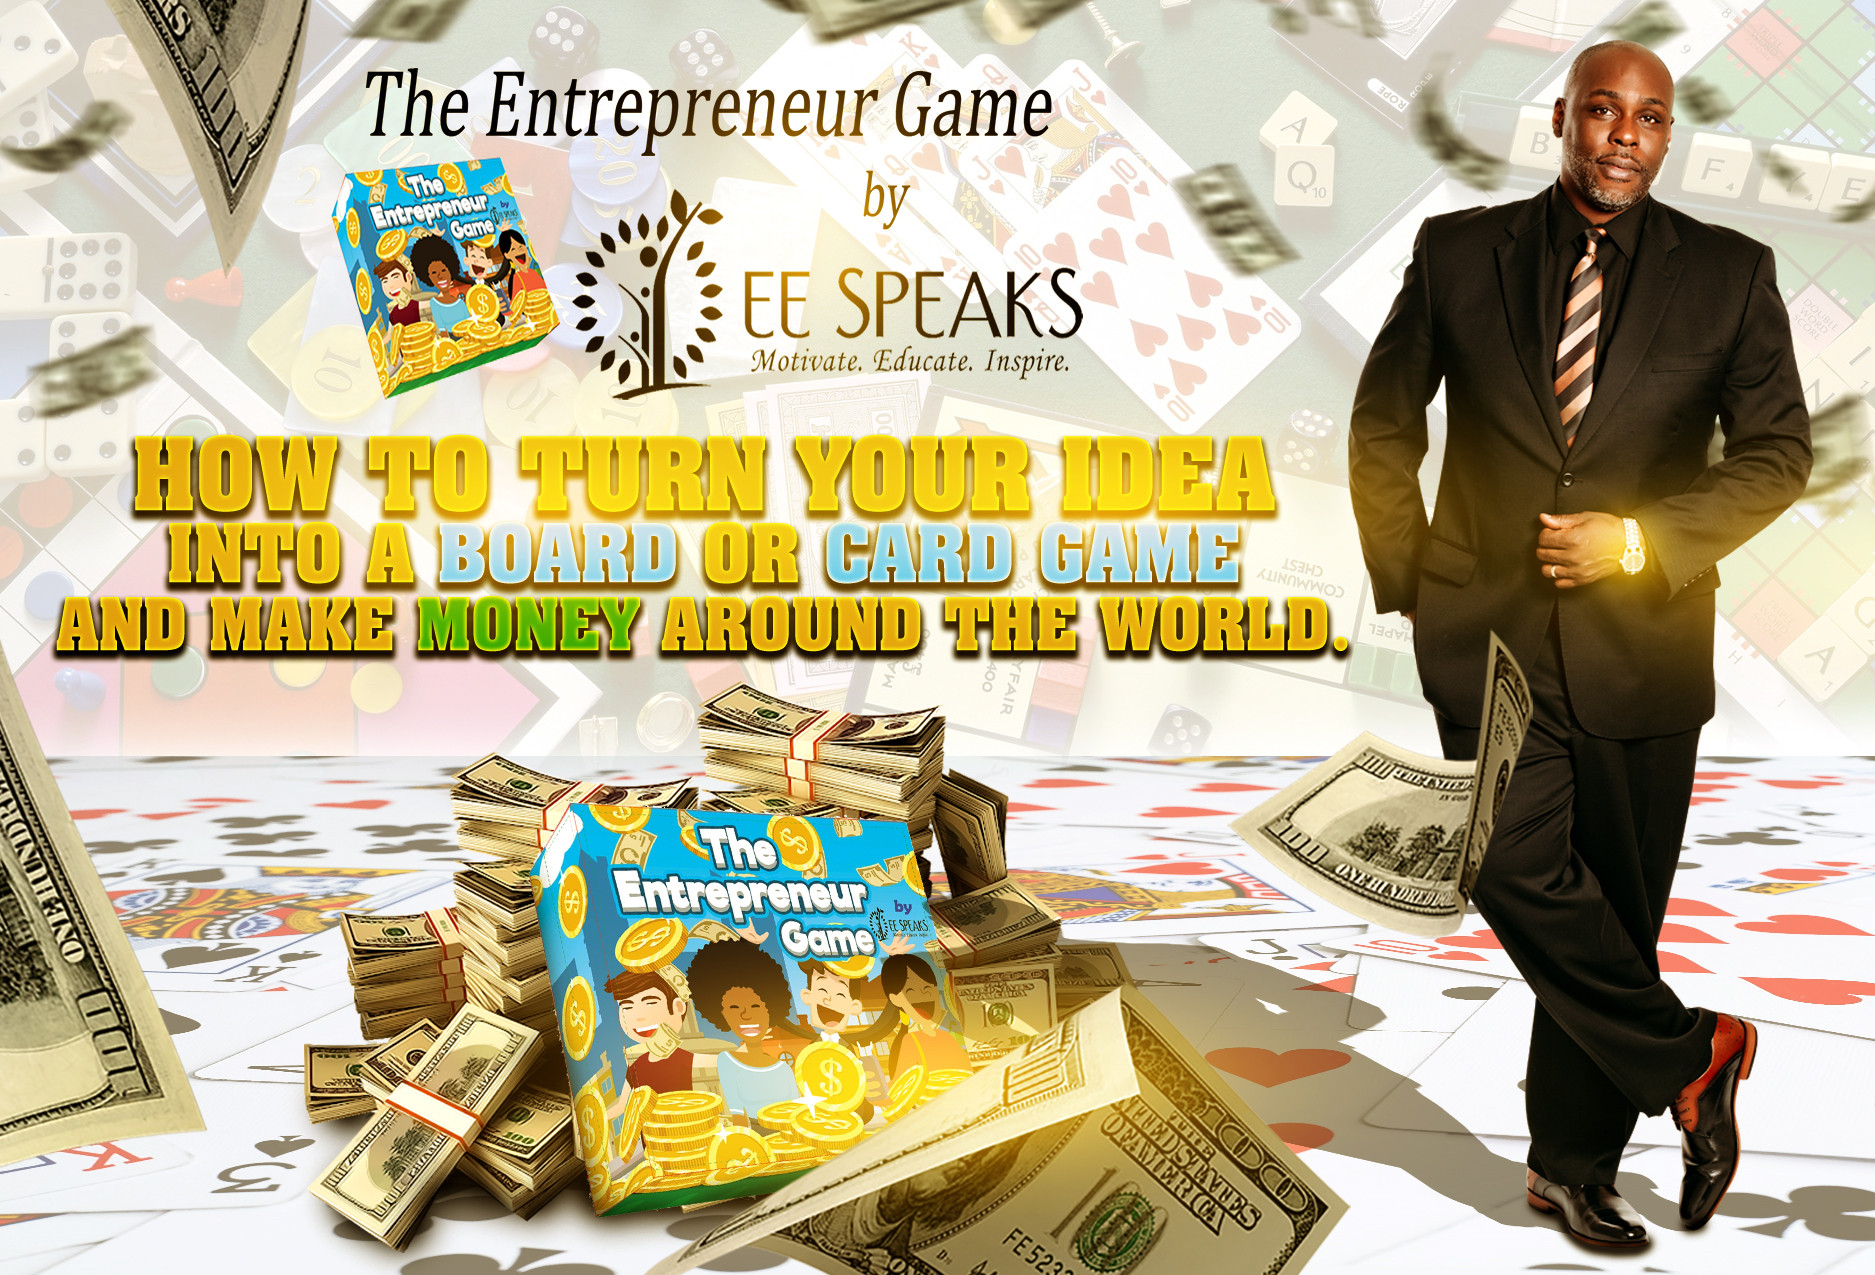 Learn how to turn your idea into a game.